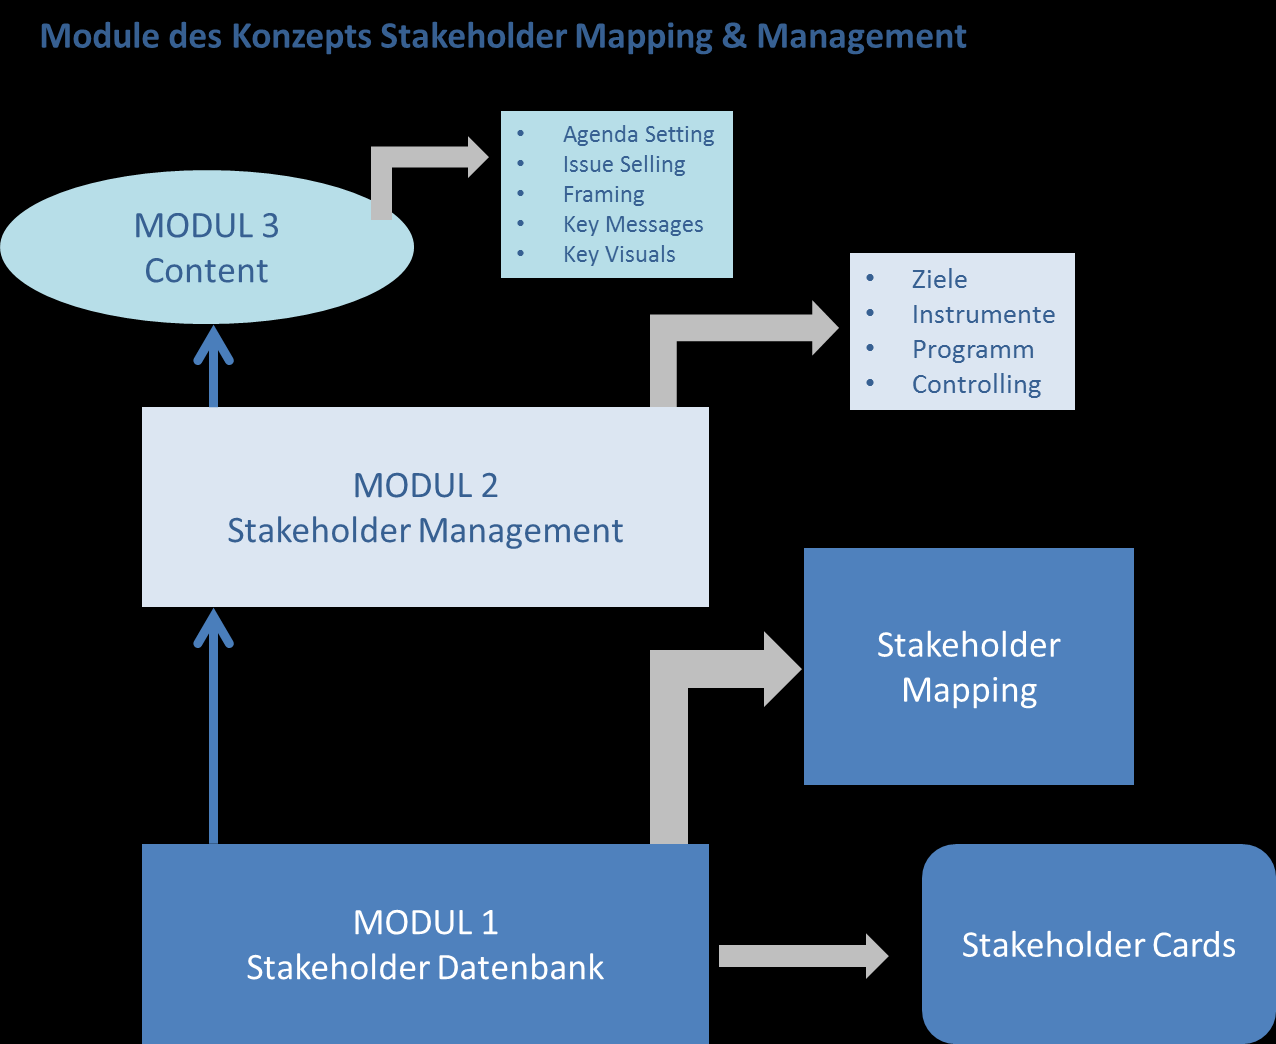 Aufwand und Umfang des Stakeholder Mappings & Managements Der Aufwand und die Dauer des Stakeholder Mappings und Managements hängt von verschiedenen Variablen ab.